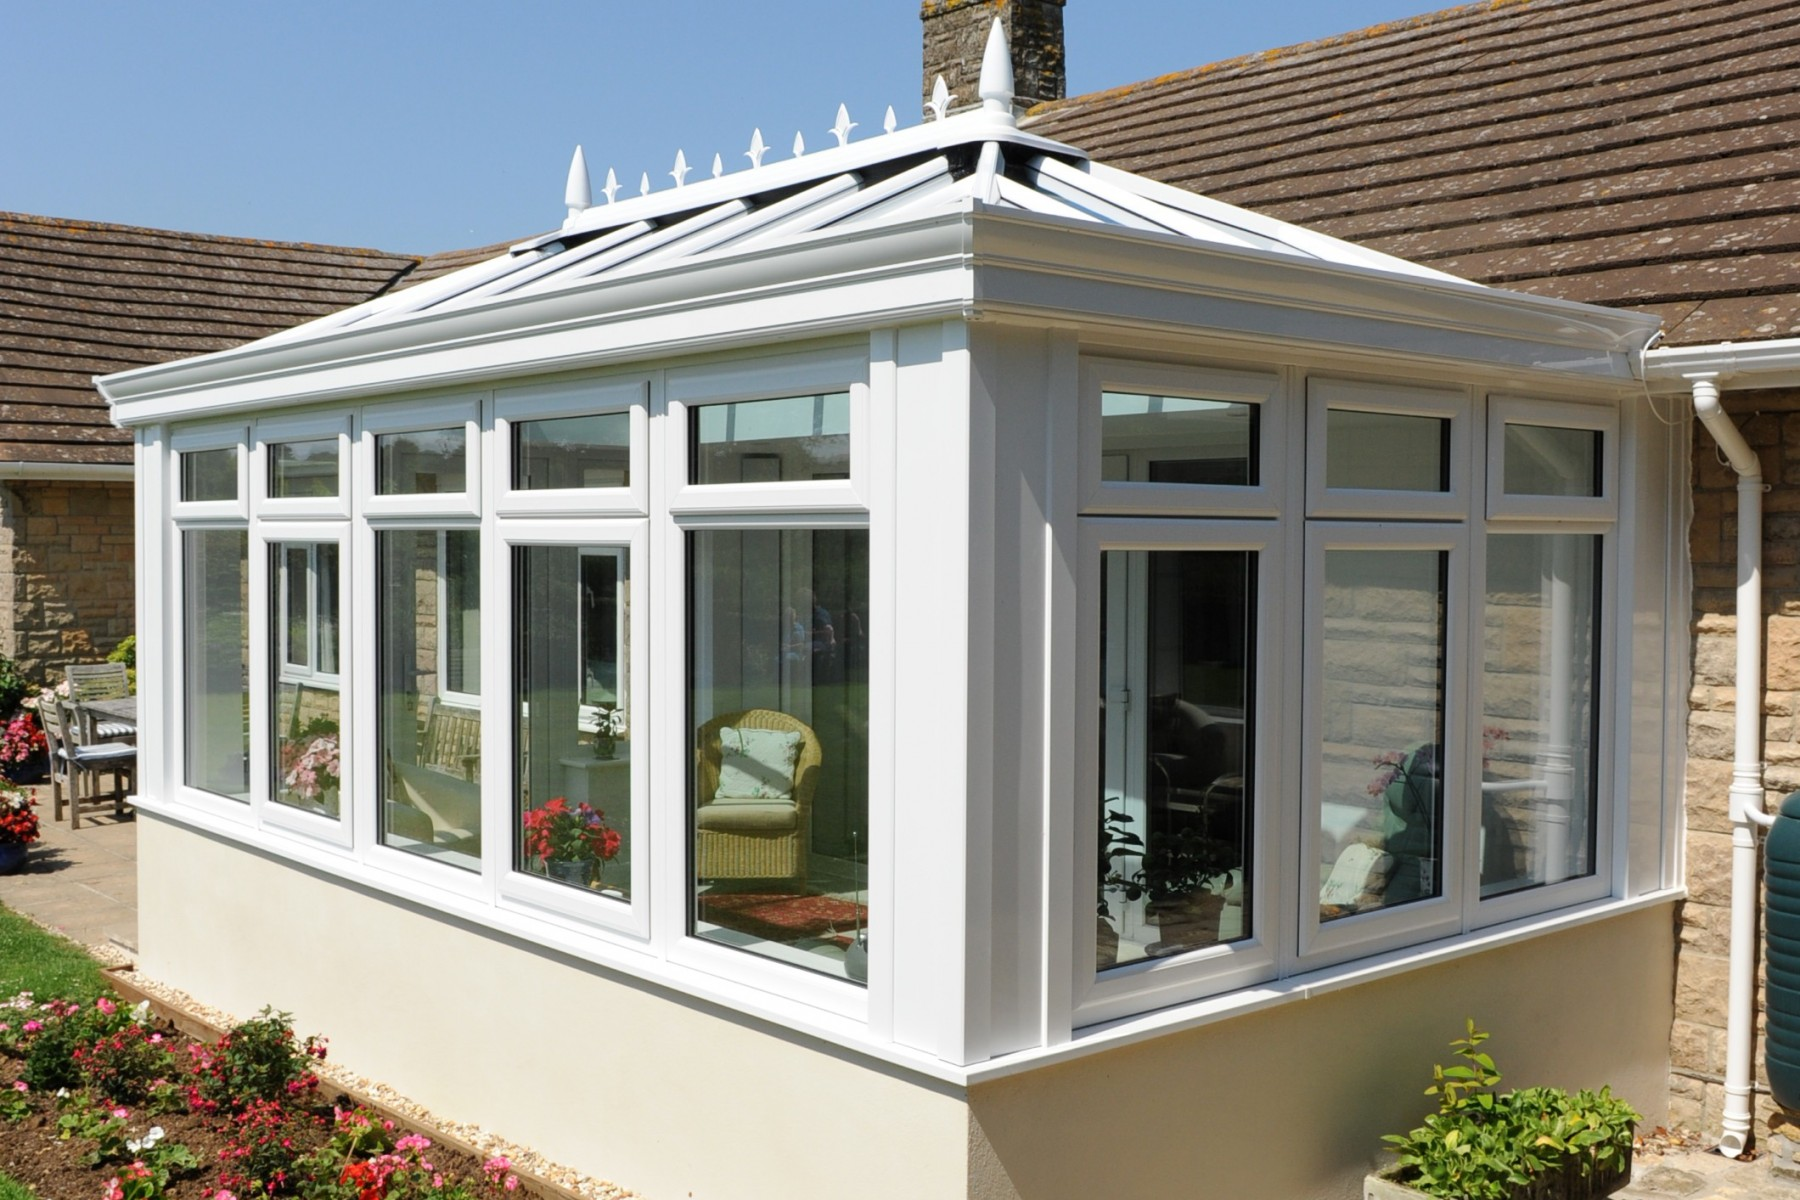 Conservatory Suppliers East Anglia